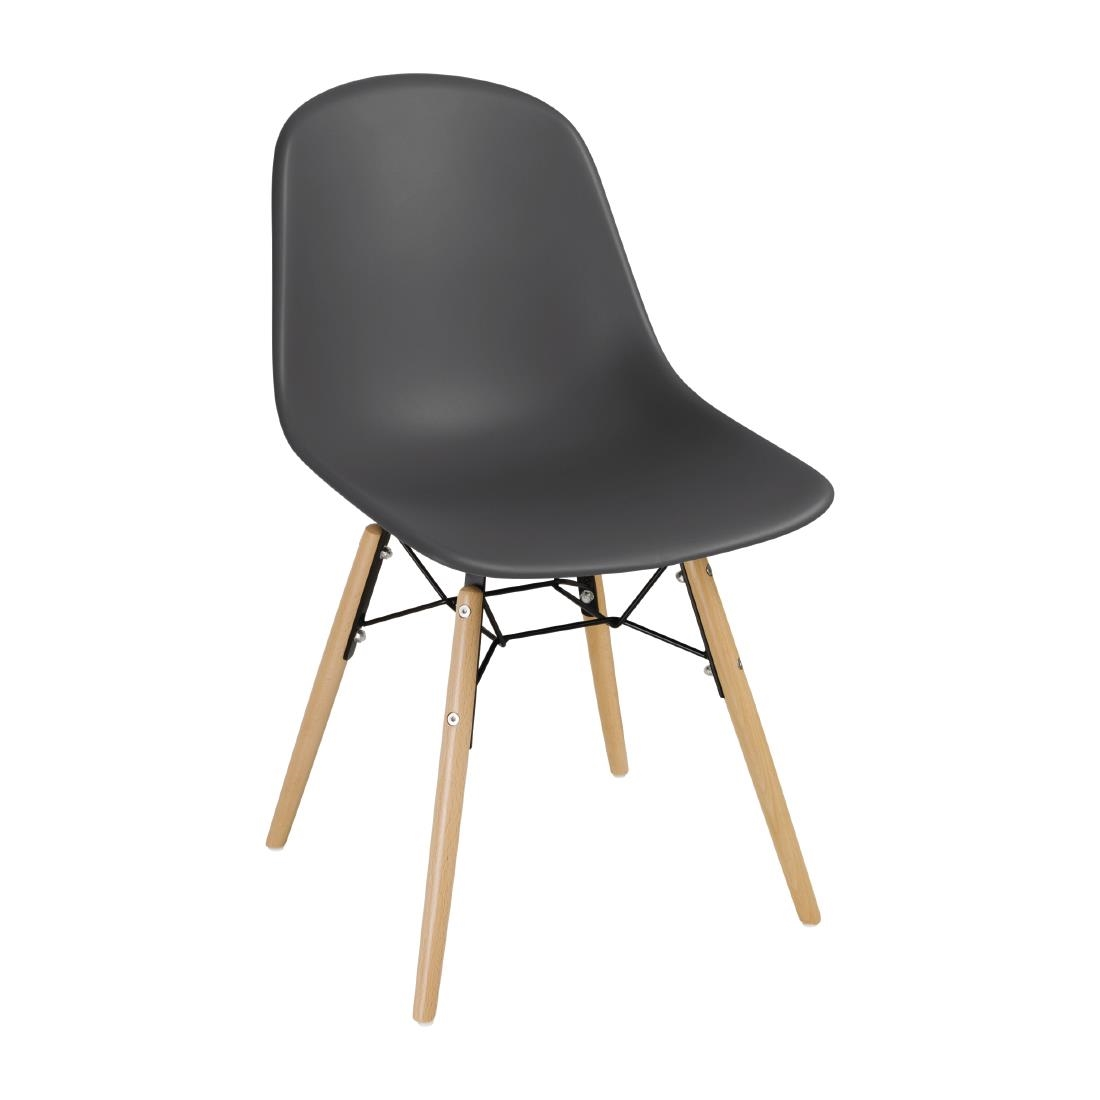 Image of Bolero Arlo PP Moulded Side Chair Charcoal with Spindle Legs (Pack of 2) Pack of 2